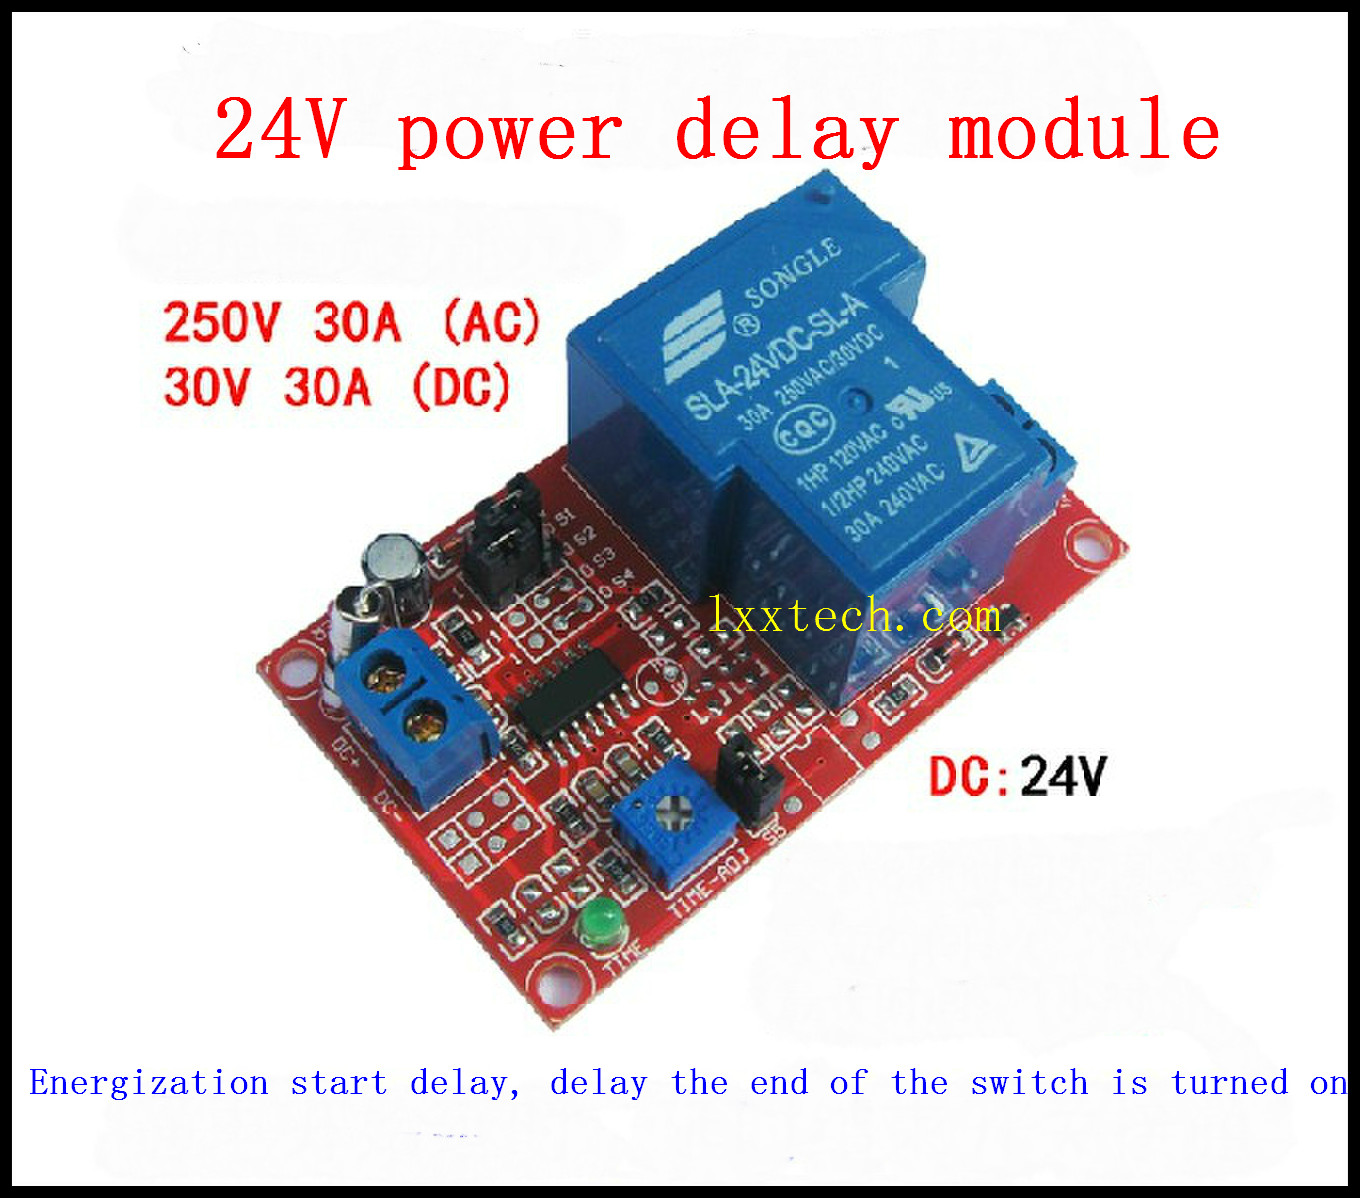 Fluorescent Light Delayed Start: 24V Power Delay Module, Delay Switch, Time Delay Relays